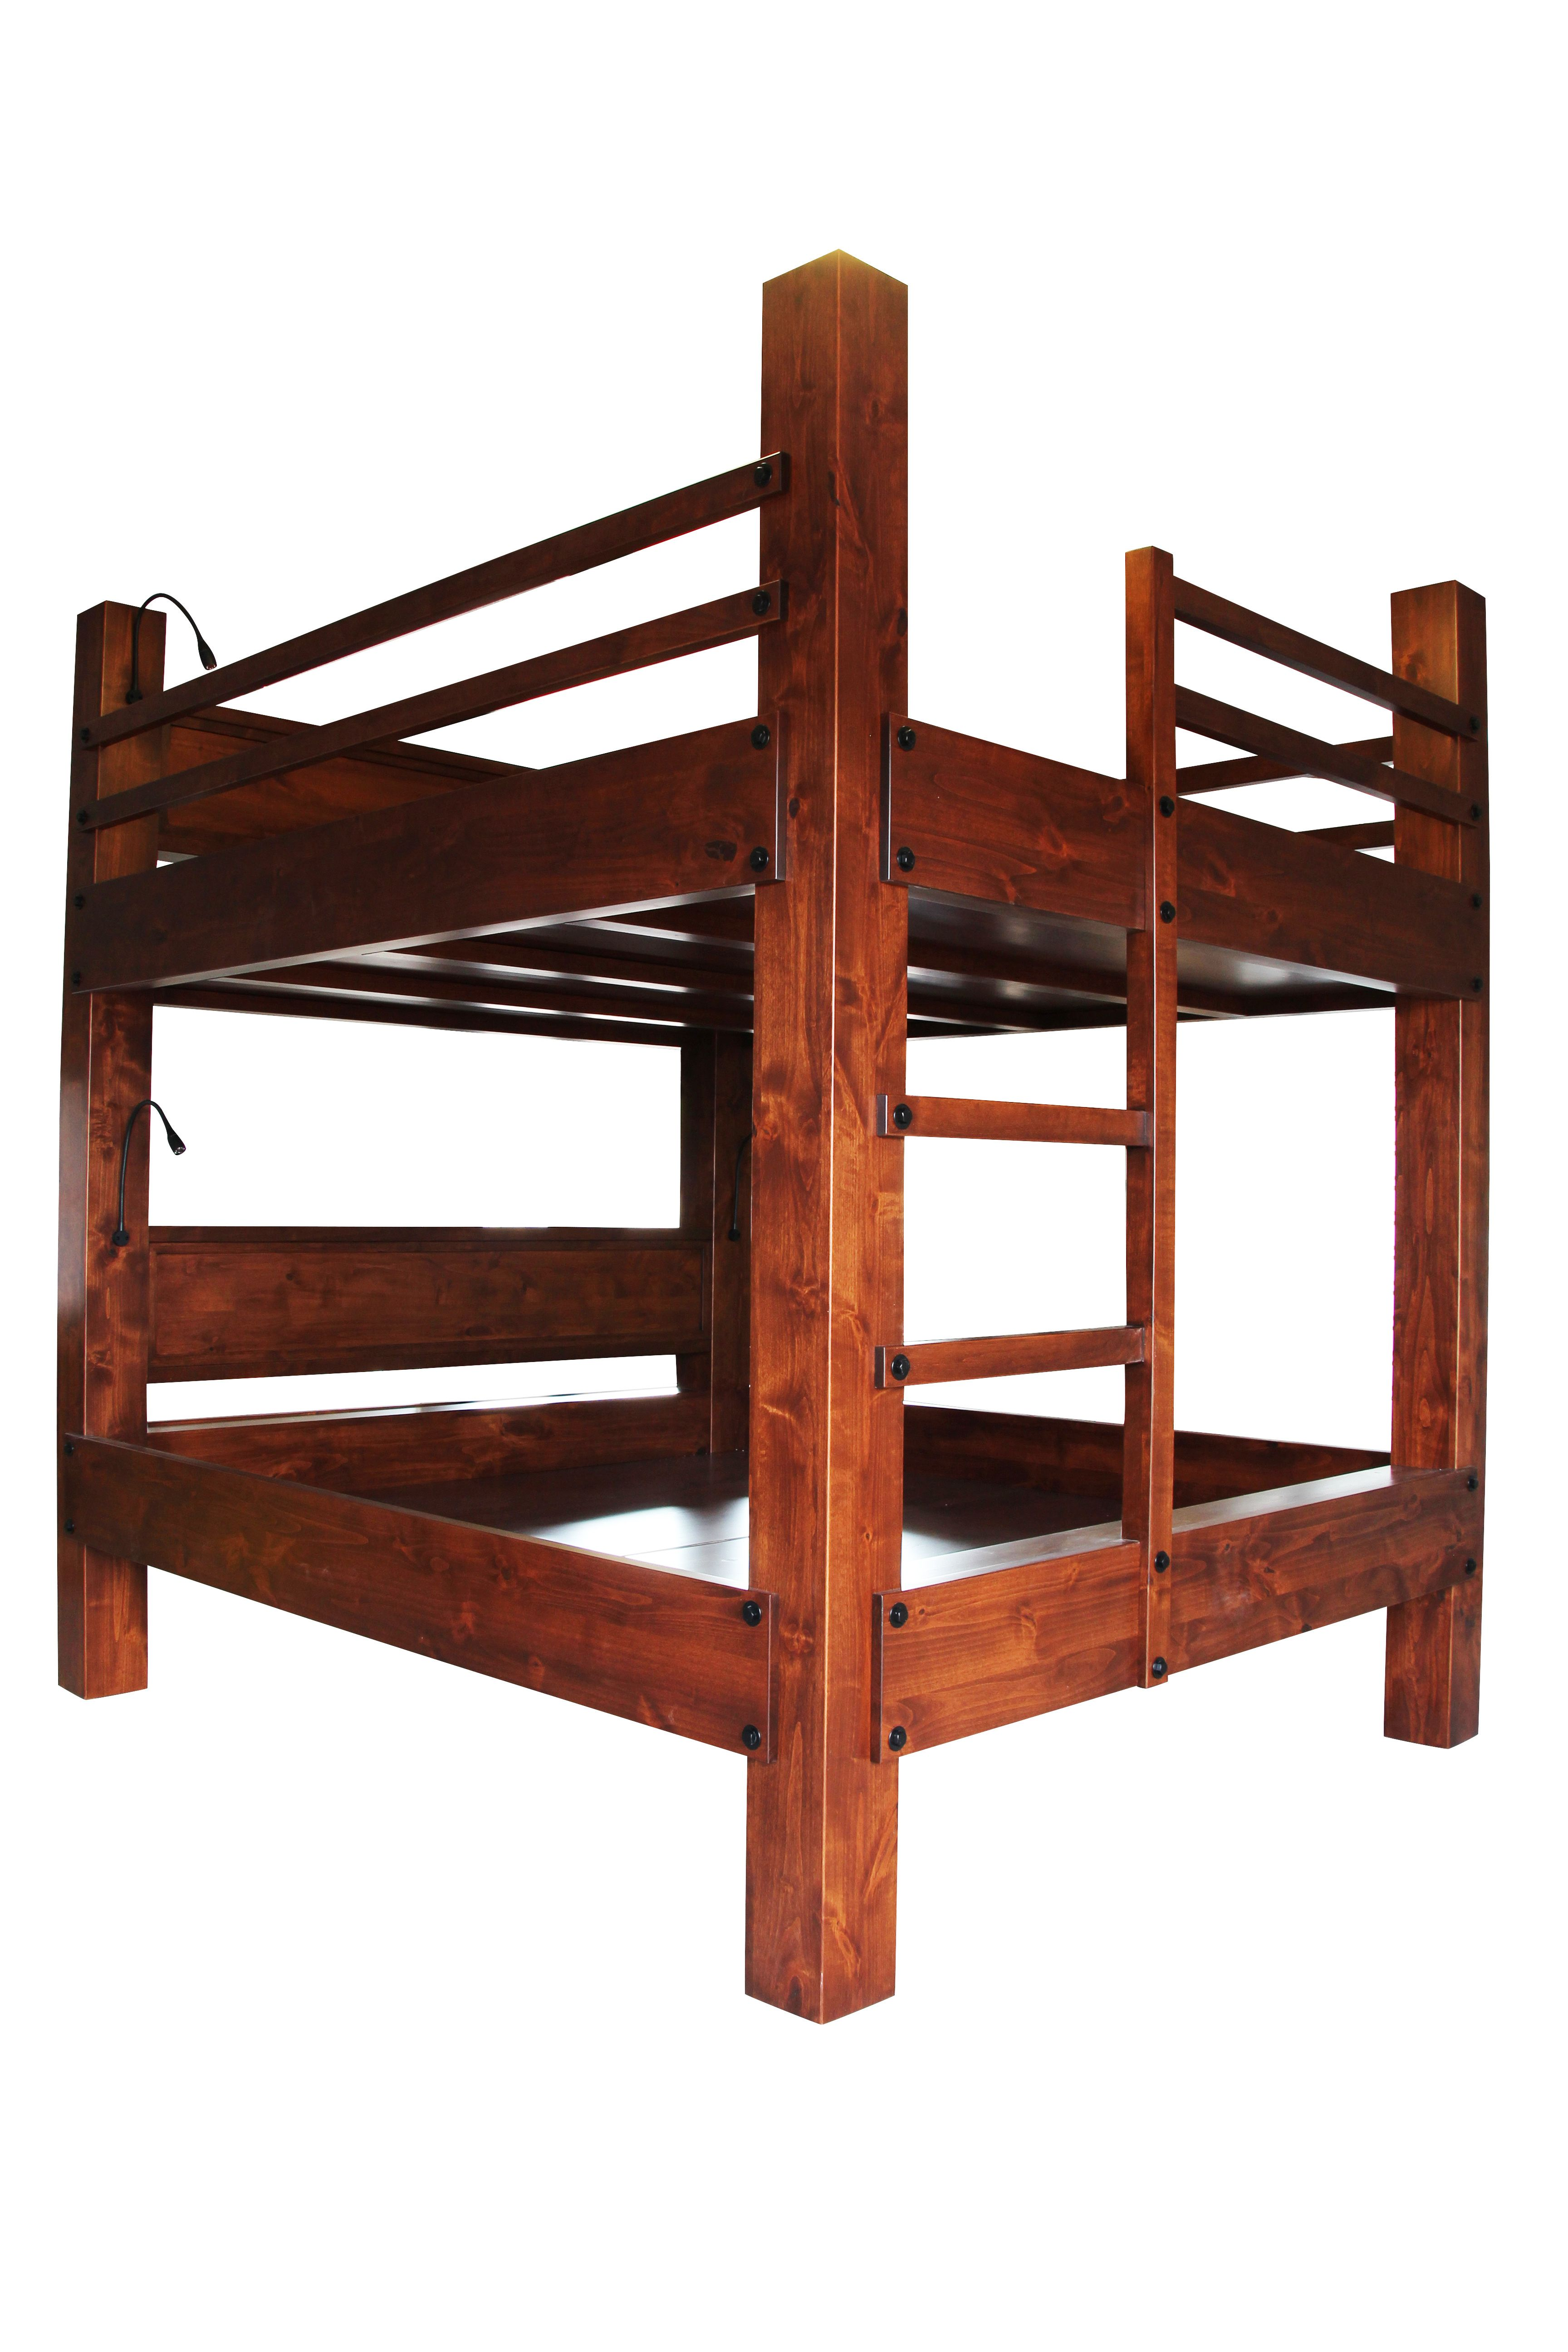 A Hand Made King Over Bunk Bed To Order From Haak Designs Llc Handmade Custom Furniture Custommade